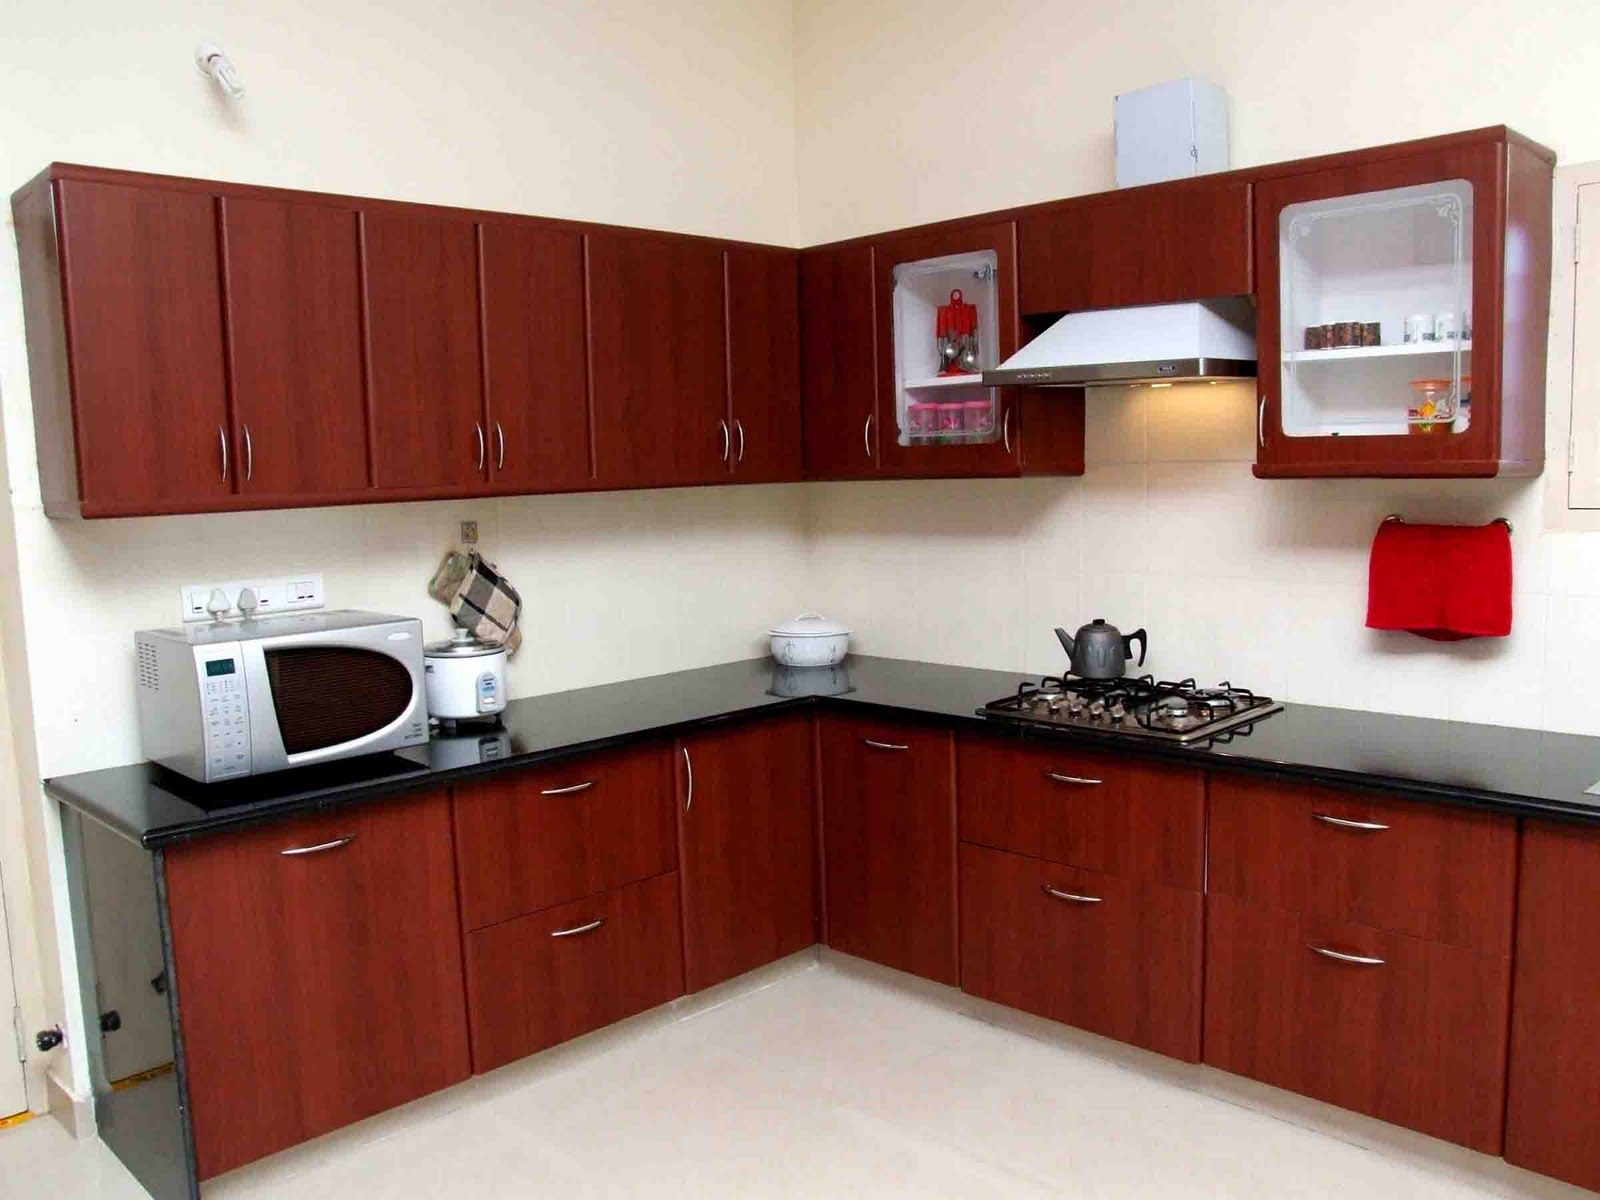 Kitchen Design in Pakistan 2020 Ideas with Pictures